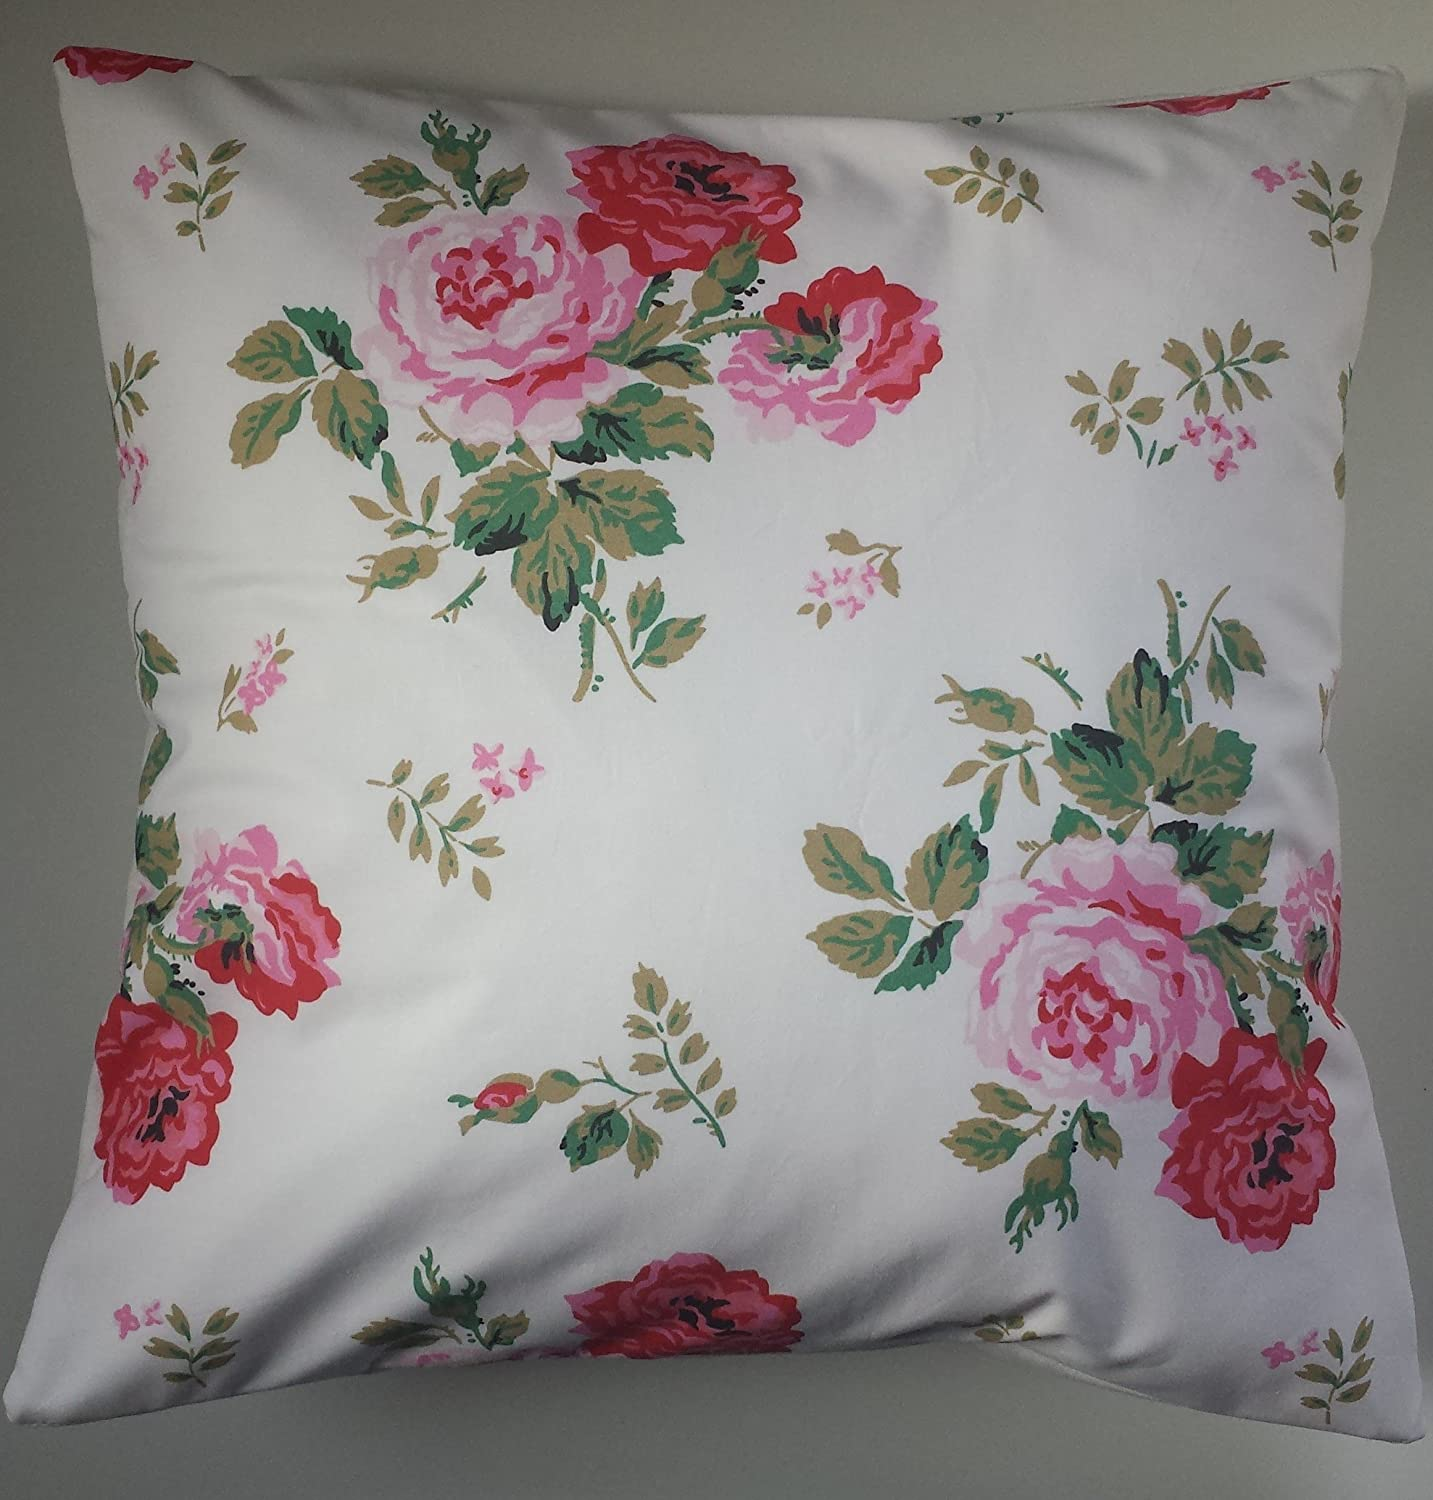 Cushion Cover in Cath Kidston Antique Rose White 14' 16' 18' 20'